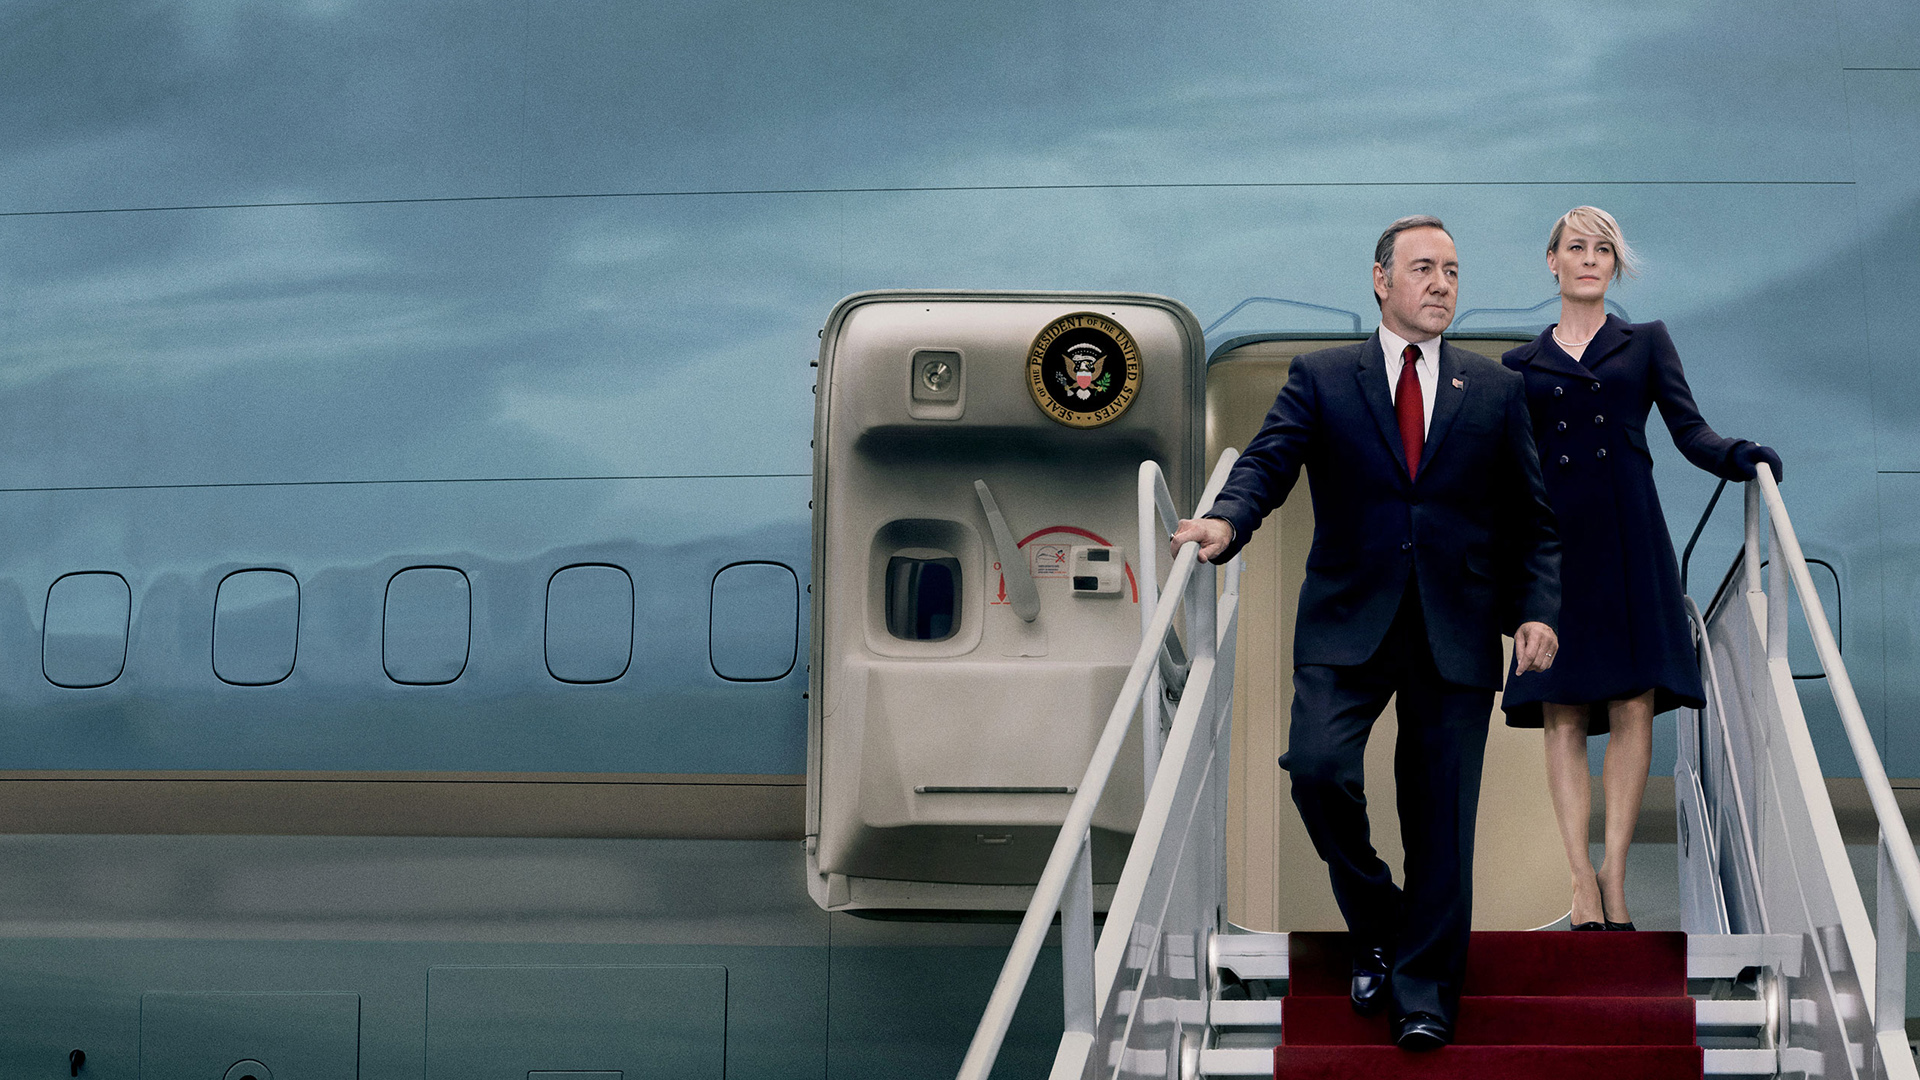 House Of Cards Hd Wallpaper Background Image 1920x1080 Id